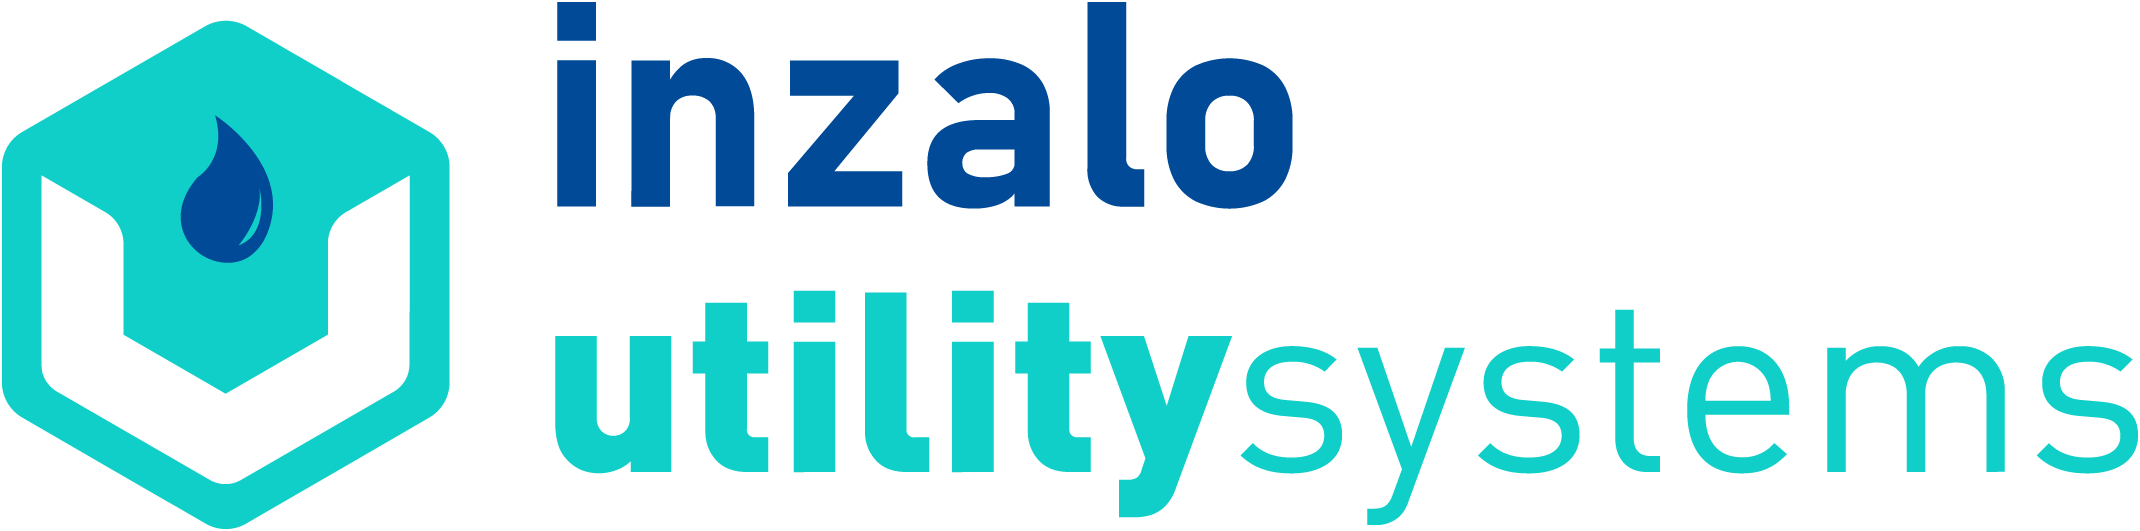 Inzalo Utility Systems